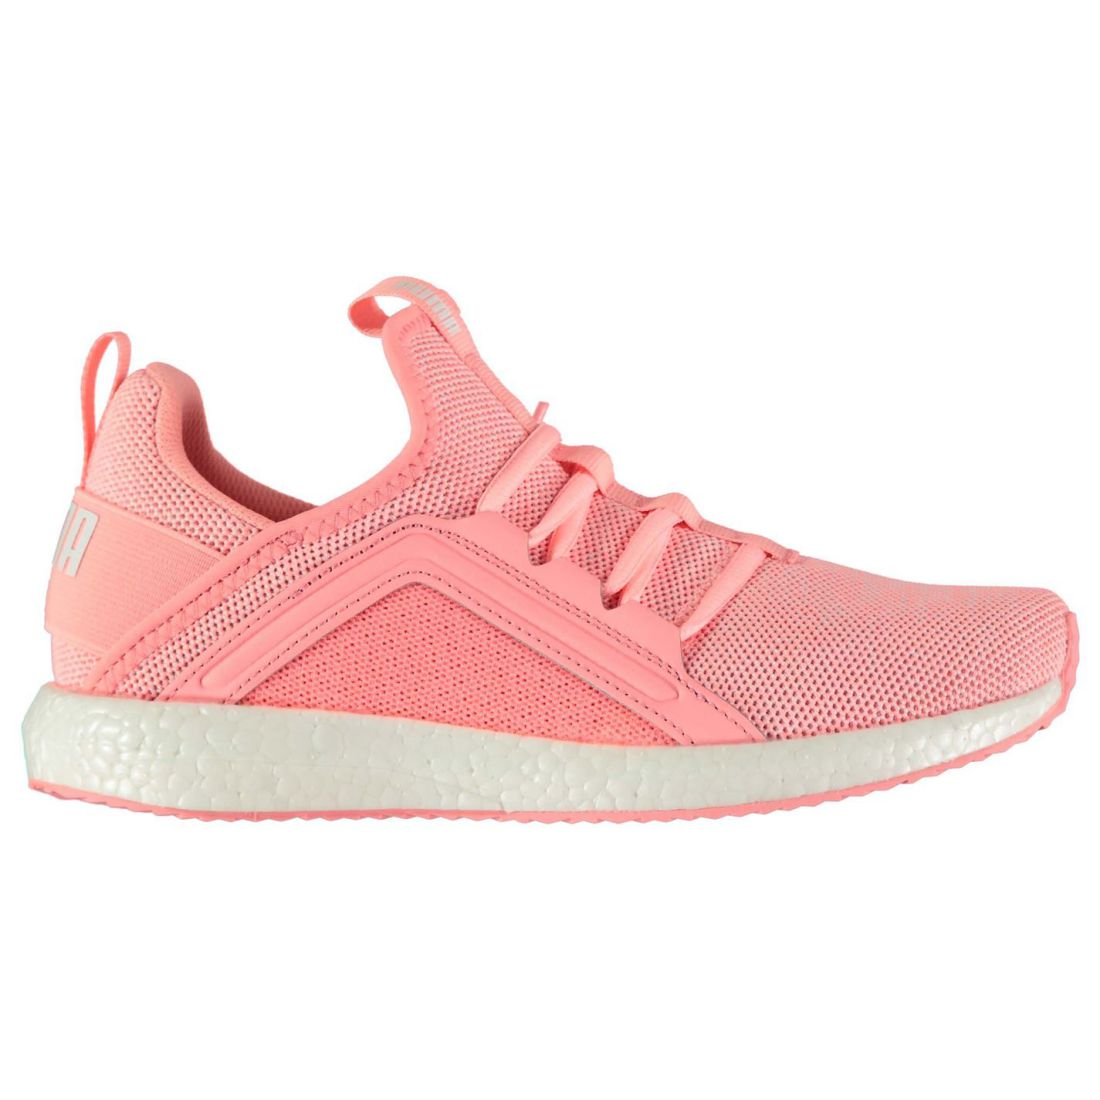 Details about Puma Womens Mega NRGY Knit Trainers Runners Lace Up Padded  Ankle Collar 1c7eee387